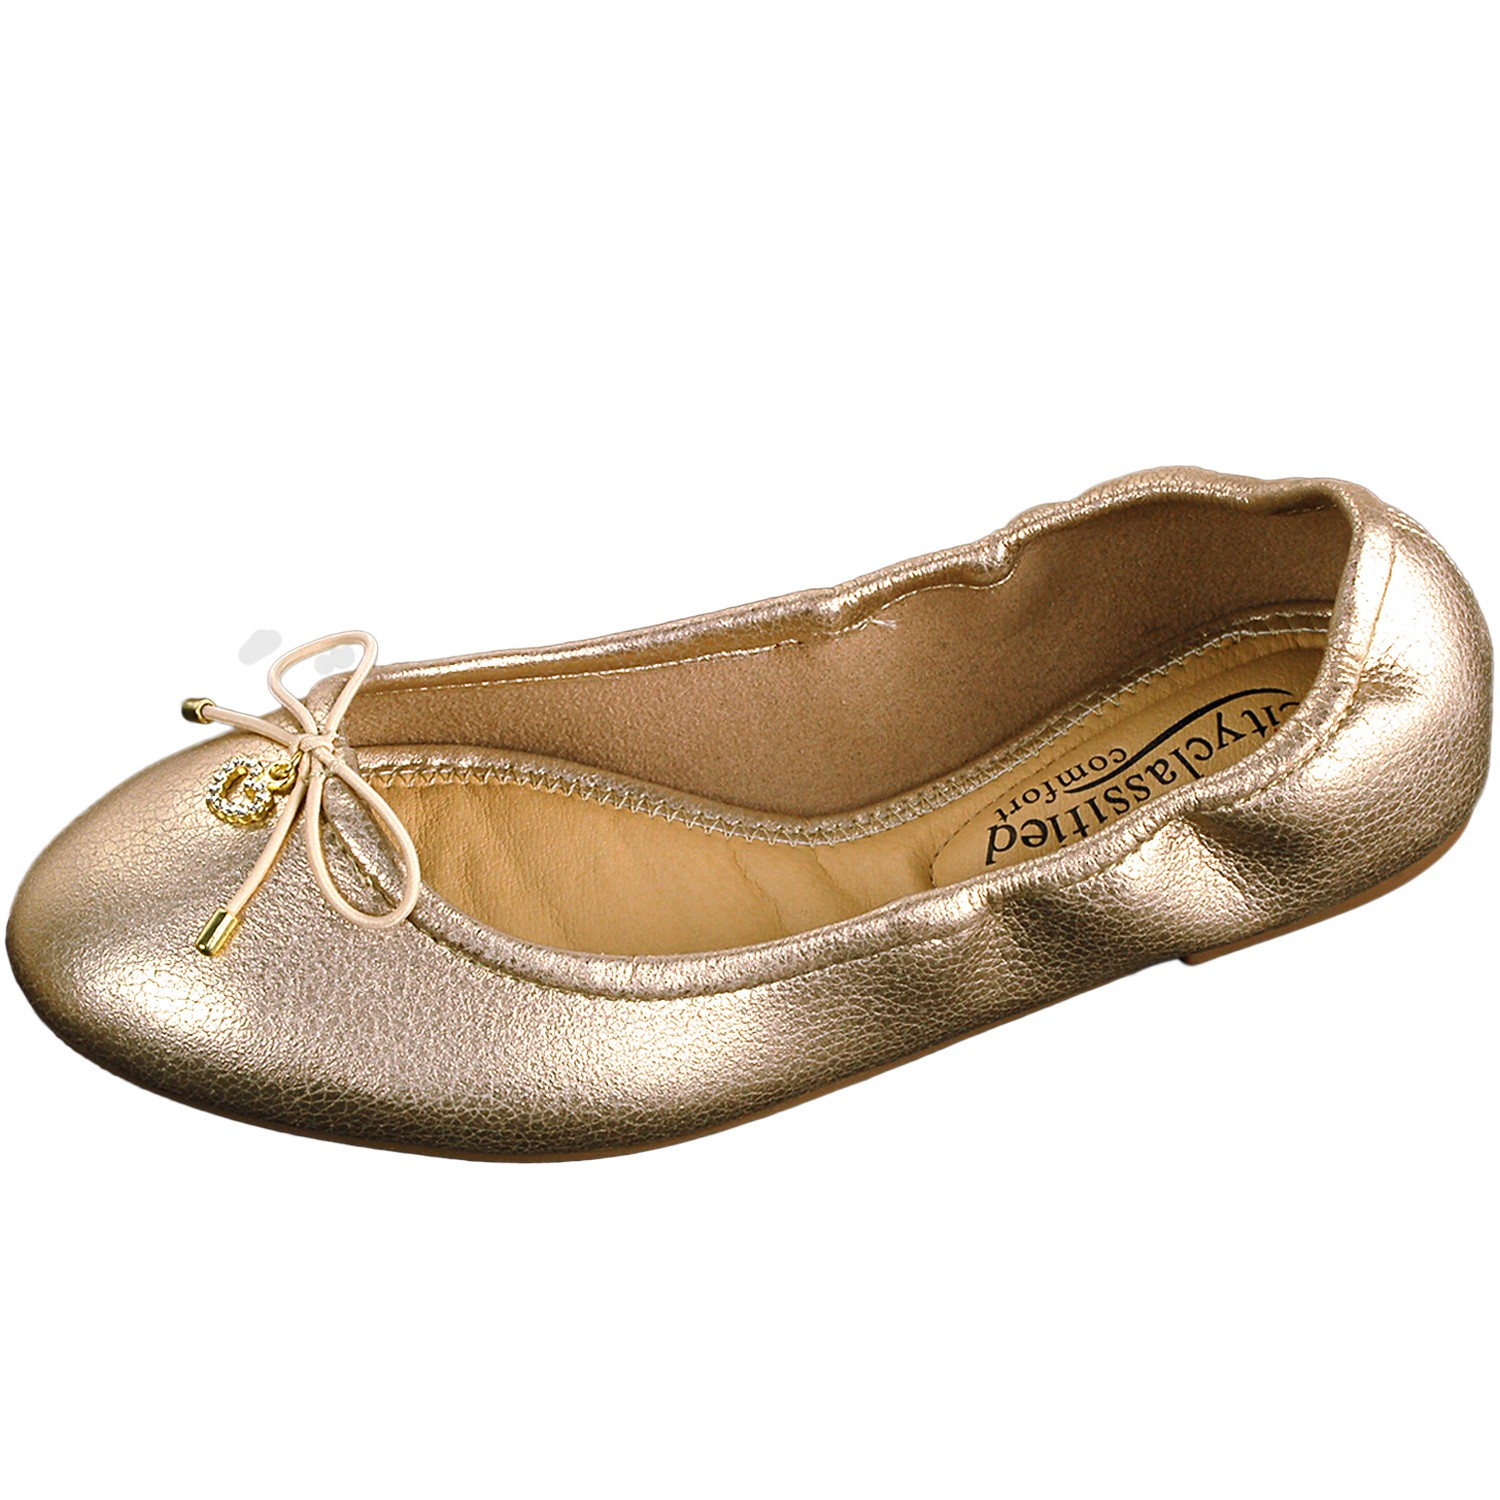 Women's ballet fashion shoes by BLOCH®. % perfect fit & elegant look. High-quality leather, comfortable & durable. See all BLOCH® fashion shoes now! As this is the first time visiting Bloch please select which store you would like to visit.